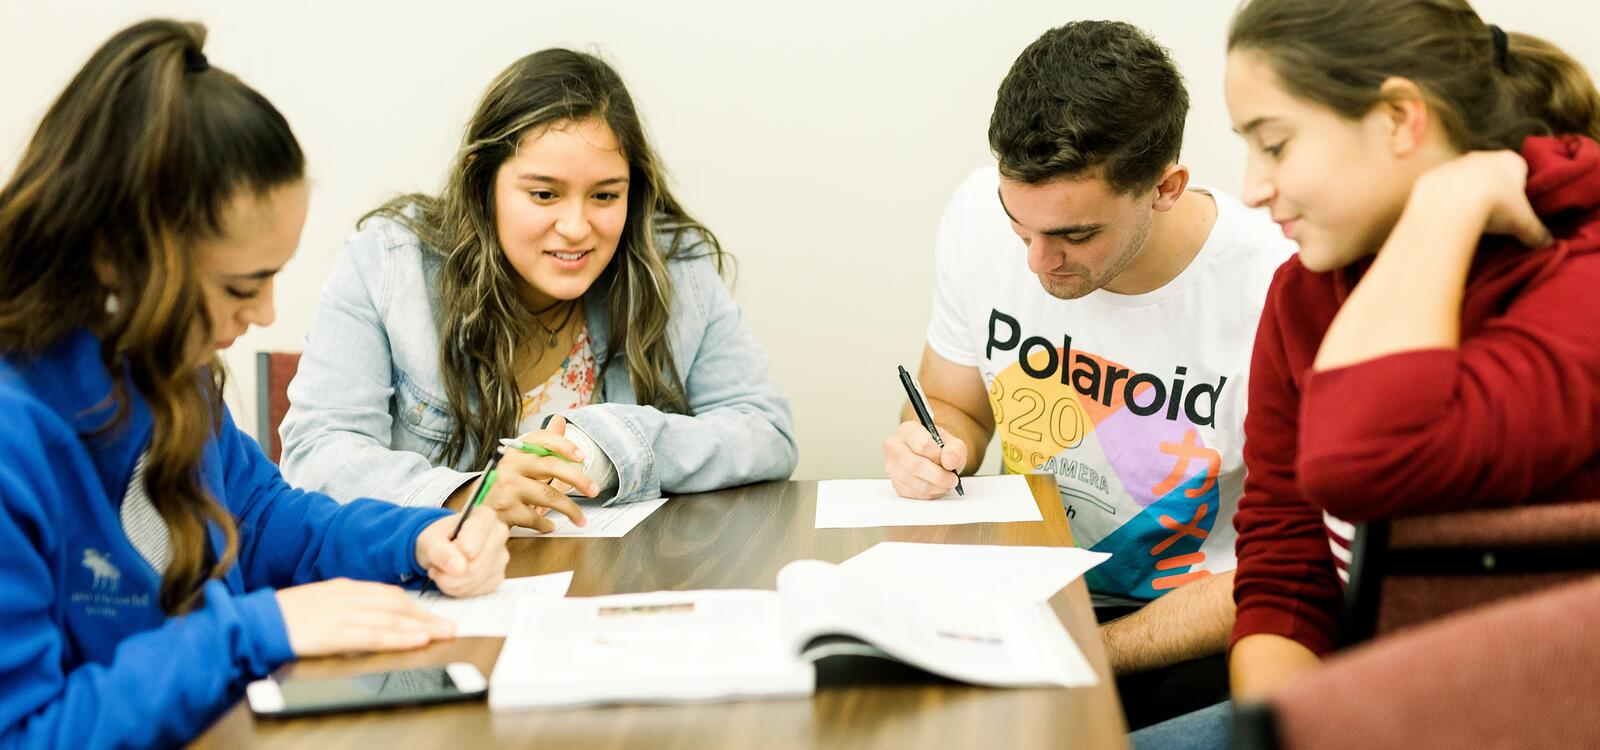 A group of four students sit at a rectangular table as they take notes from a textbook